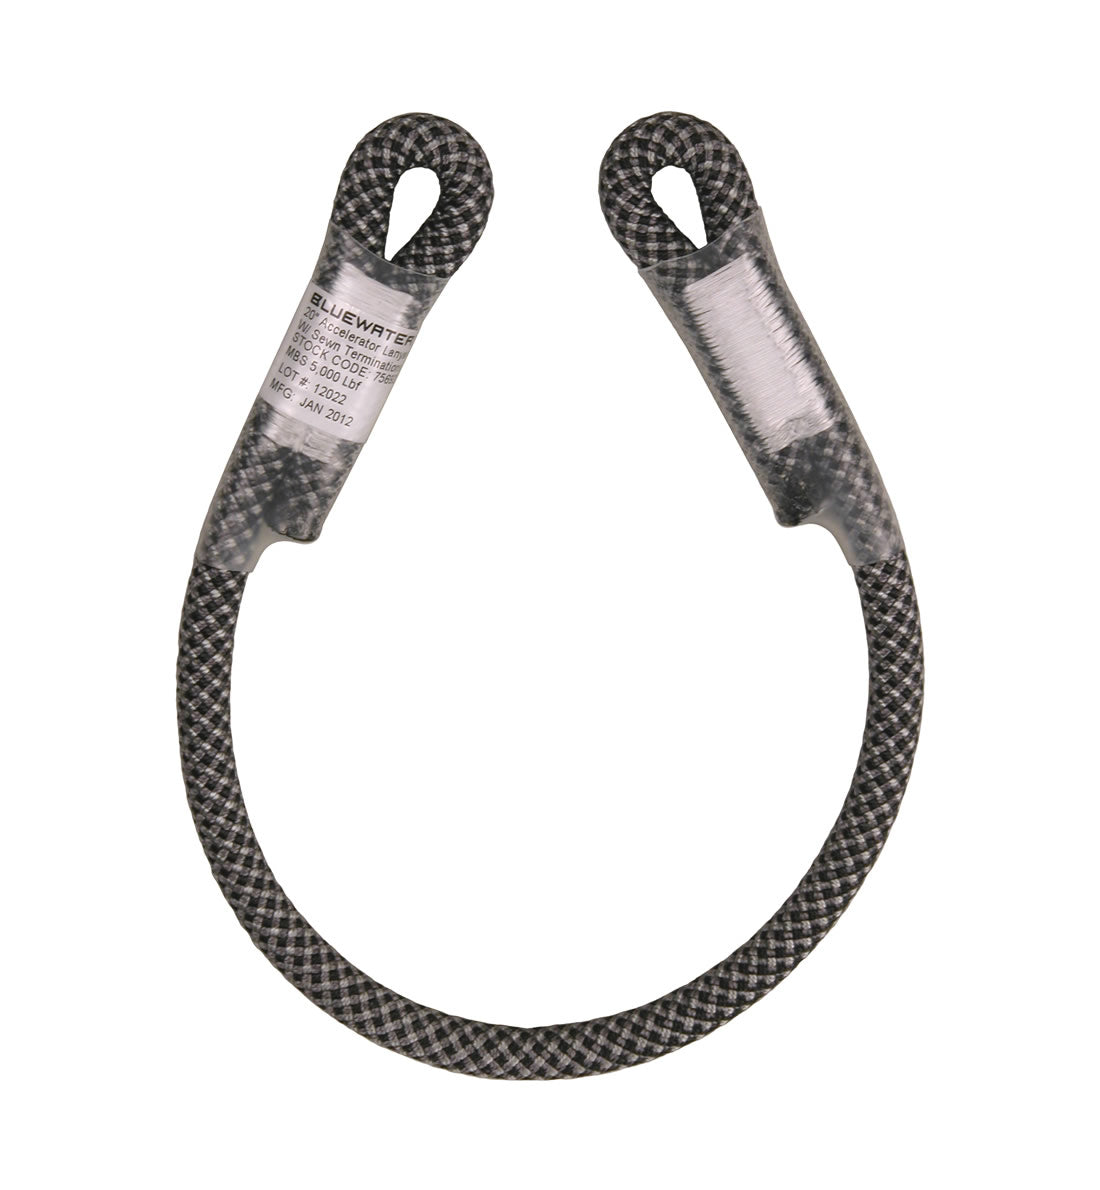 Bluewater 10.5MM Decelerator Dynamic Lanyard